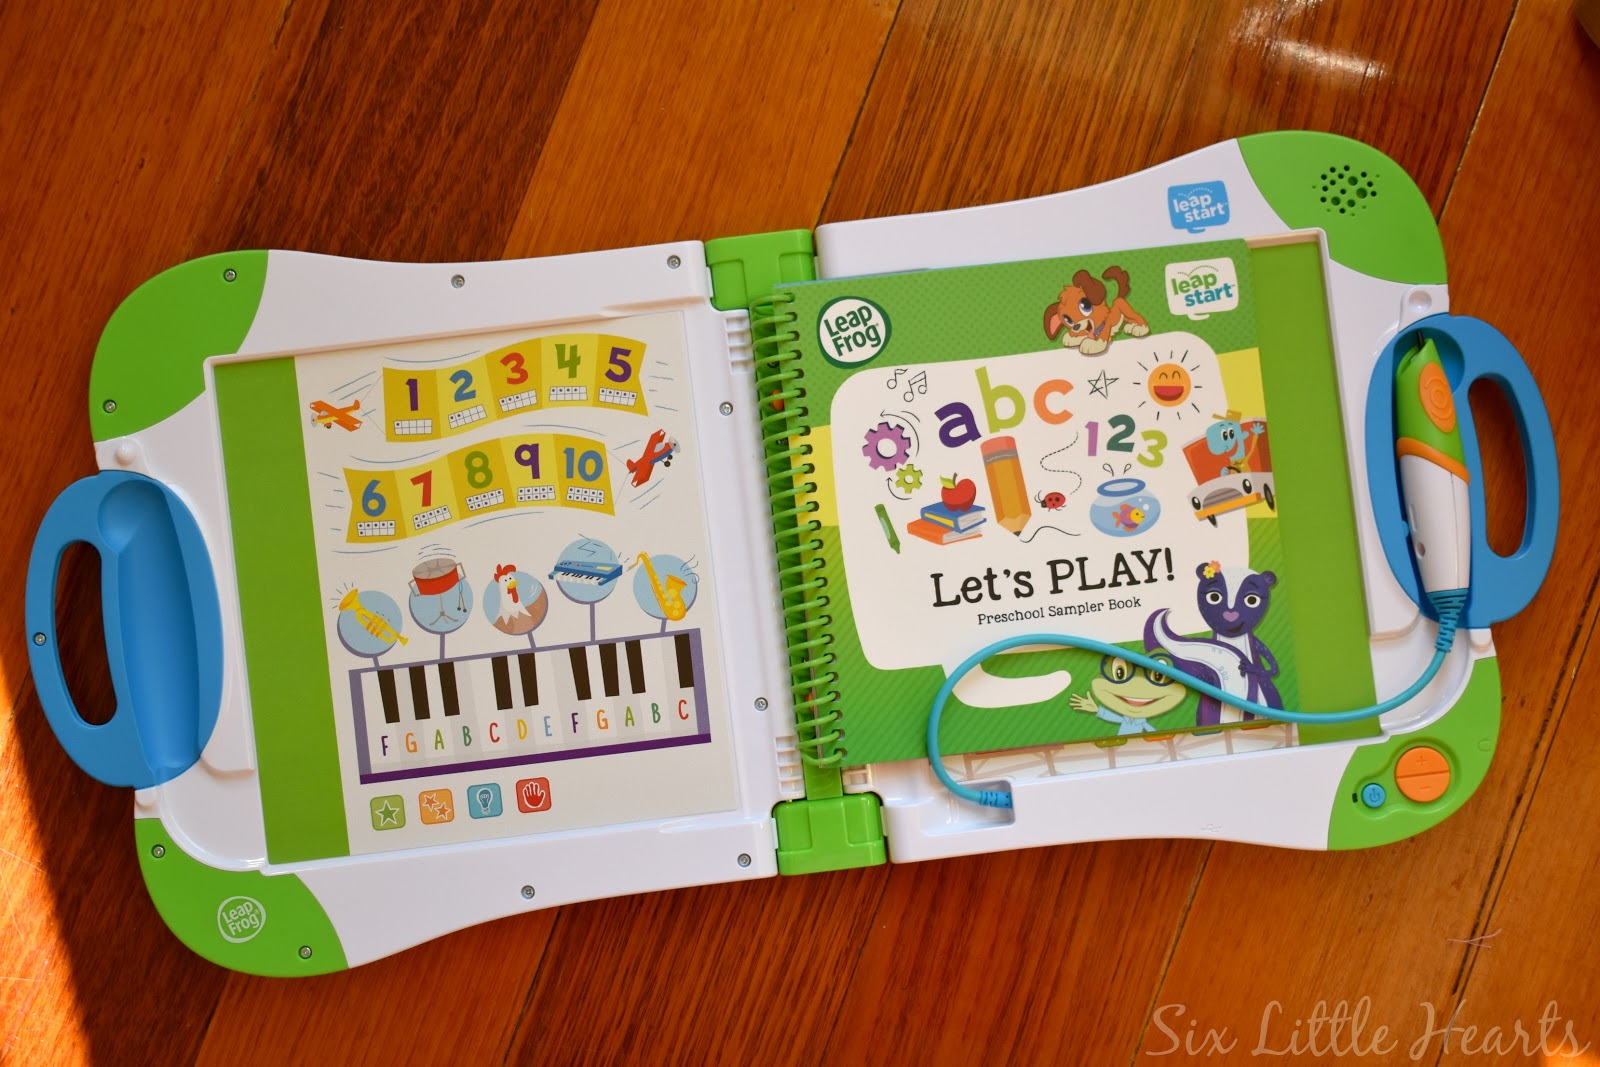 A preschool sampler book is included with your initial LeapStart purchase  to get kids started.